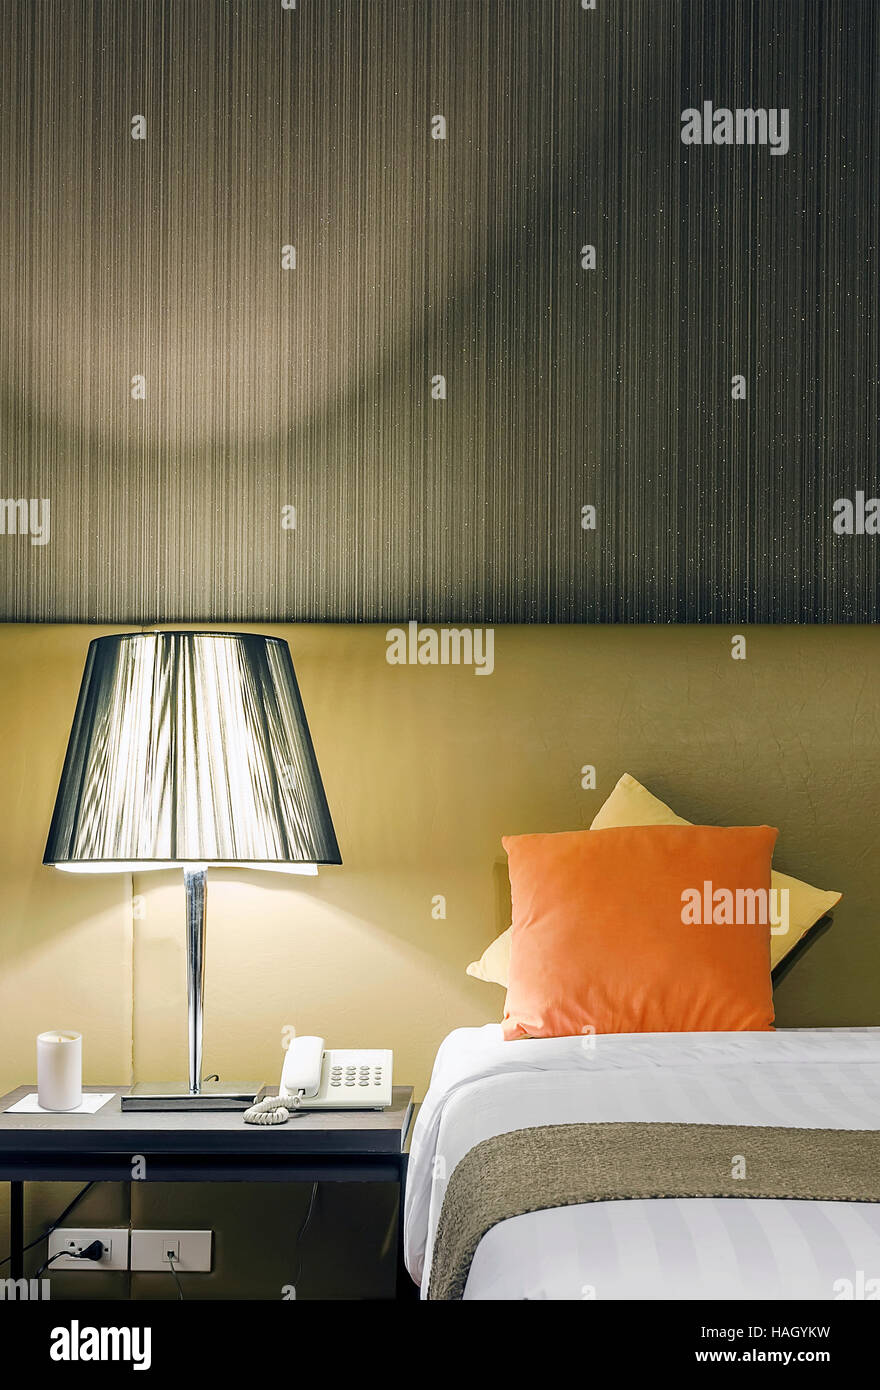 Interior Design Detail Of 3 Star Hotel Room Stock Photo Alamy